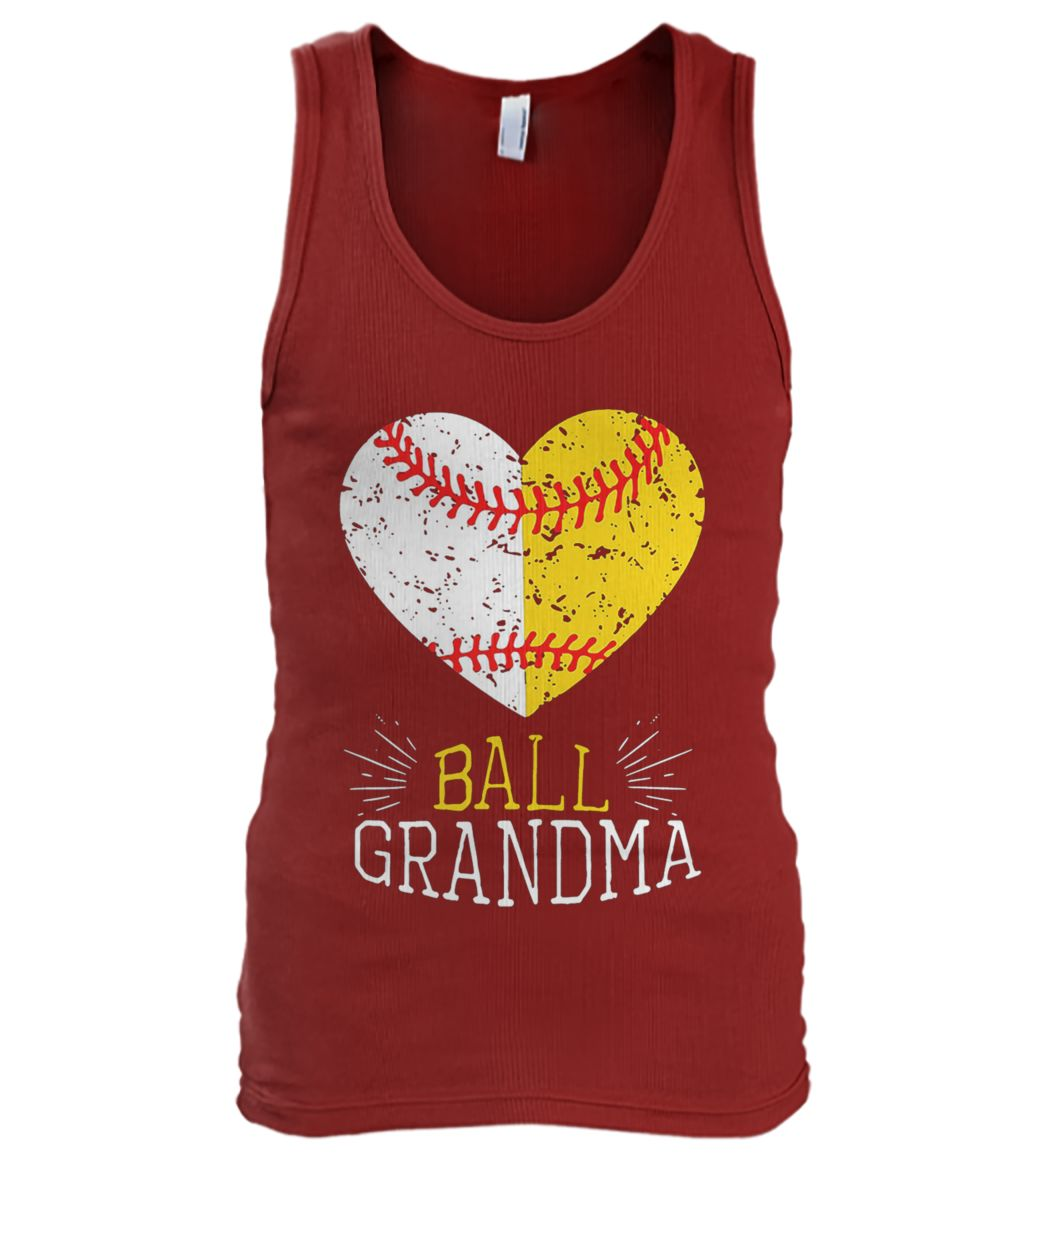 Ball grandma softball or baseball men's tank top